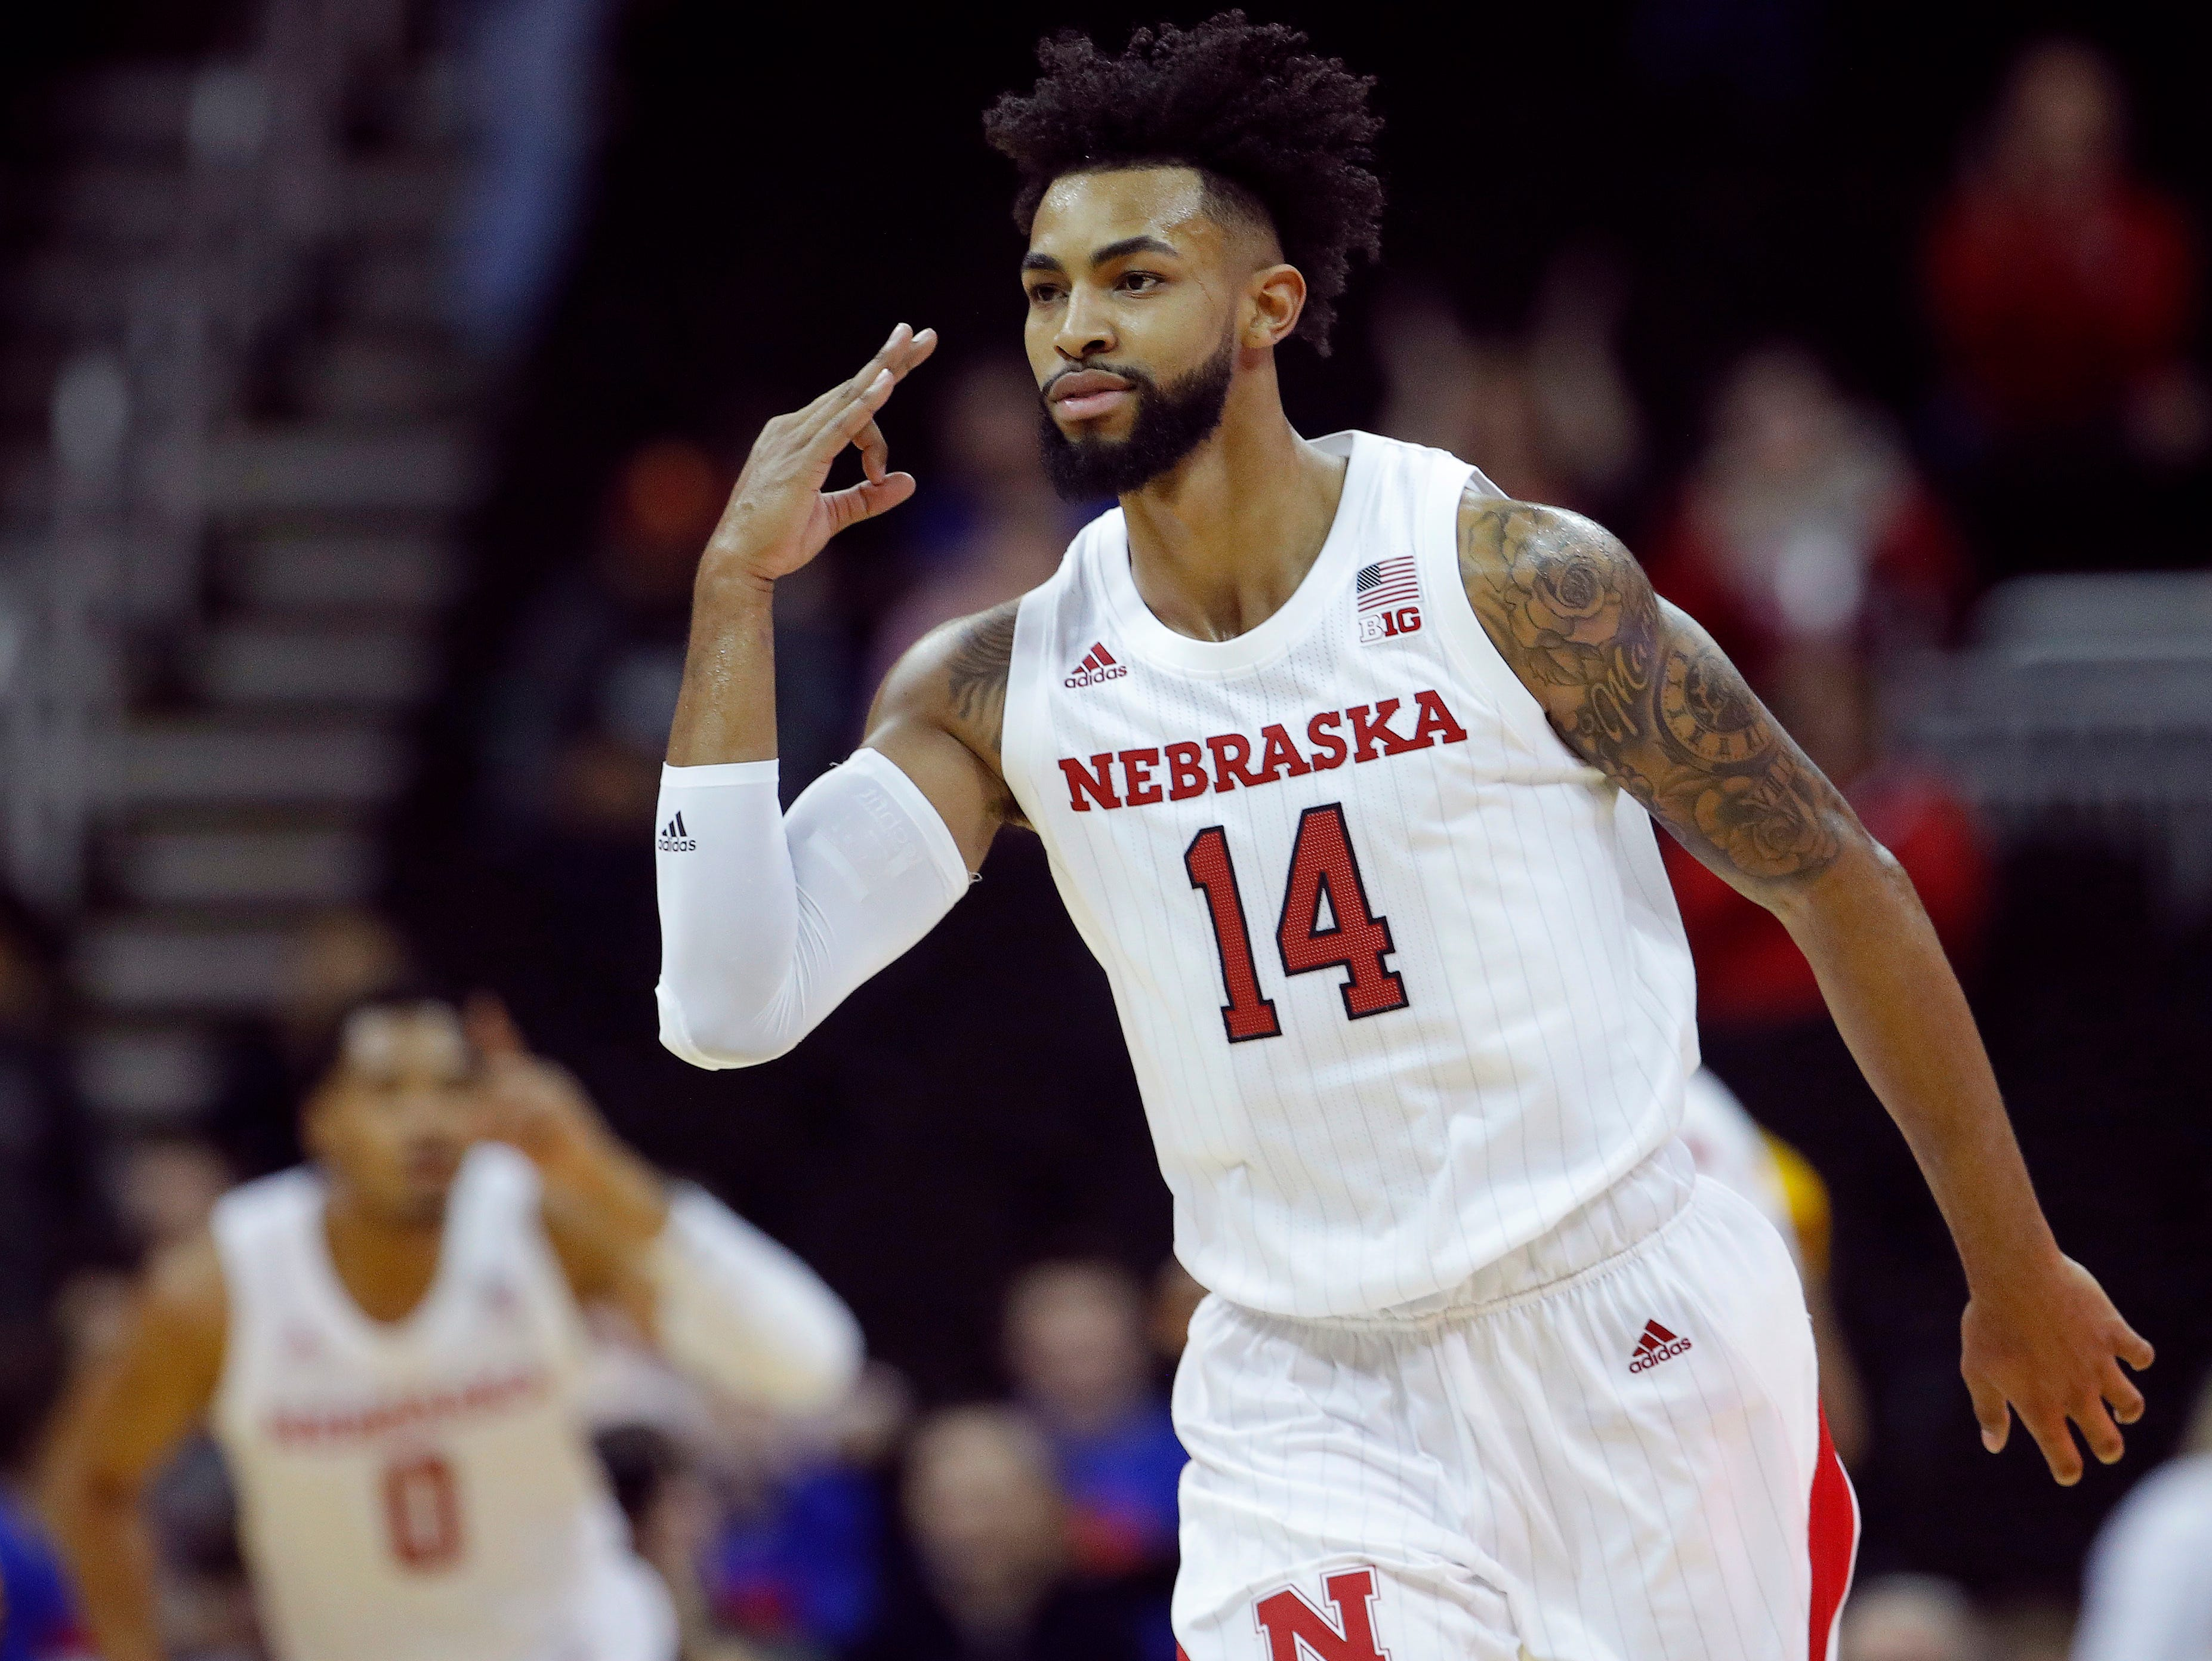 Nebraska's Isaac Copeland Jr. (14) celebrates after making a basket during the second half of an NCAA college basketball game against Missouri State, Monday, Nov. 19, 2018, in Kansas City, Mo. (AP Photo/Charlie Riedel)